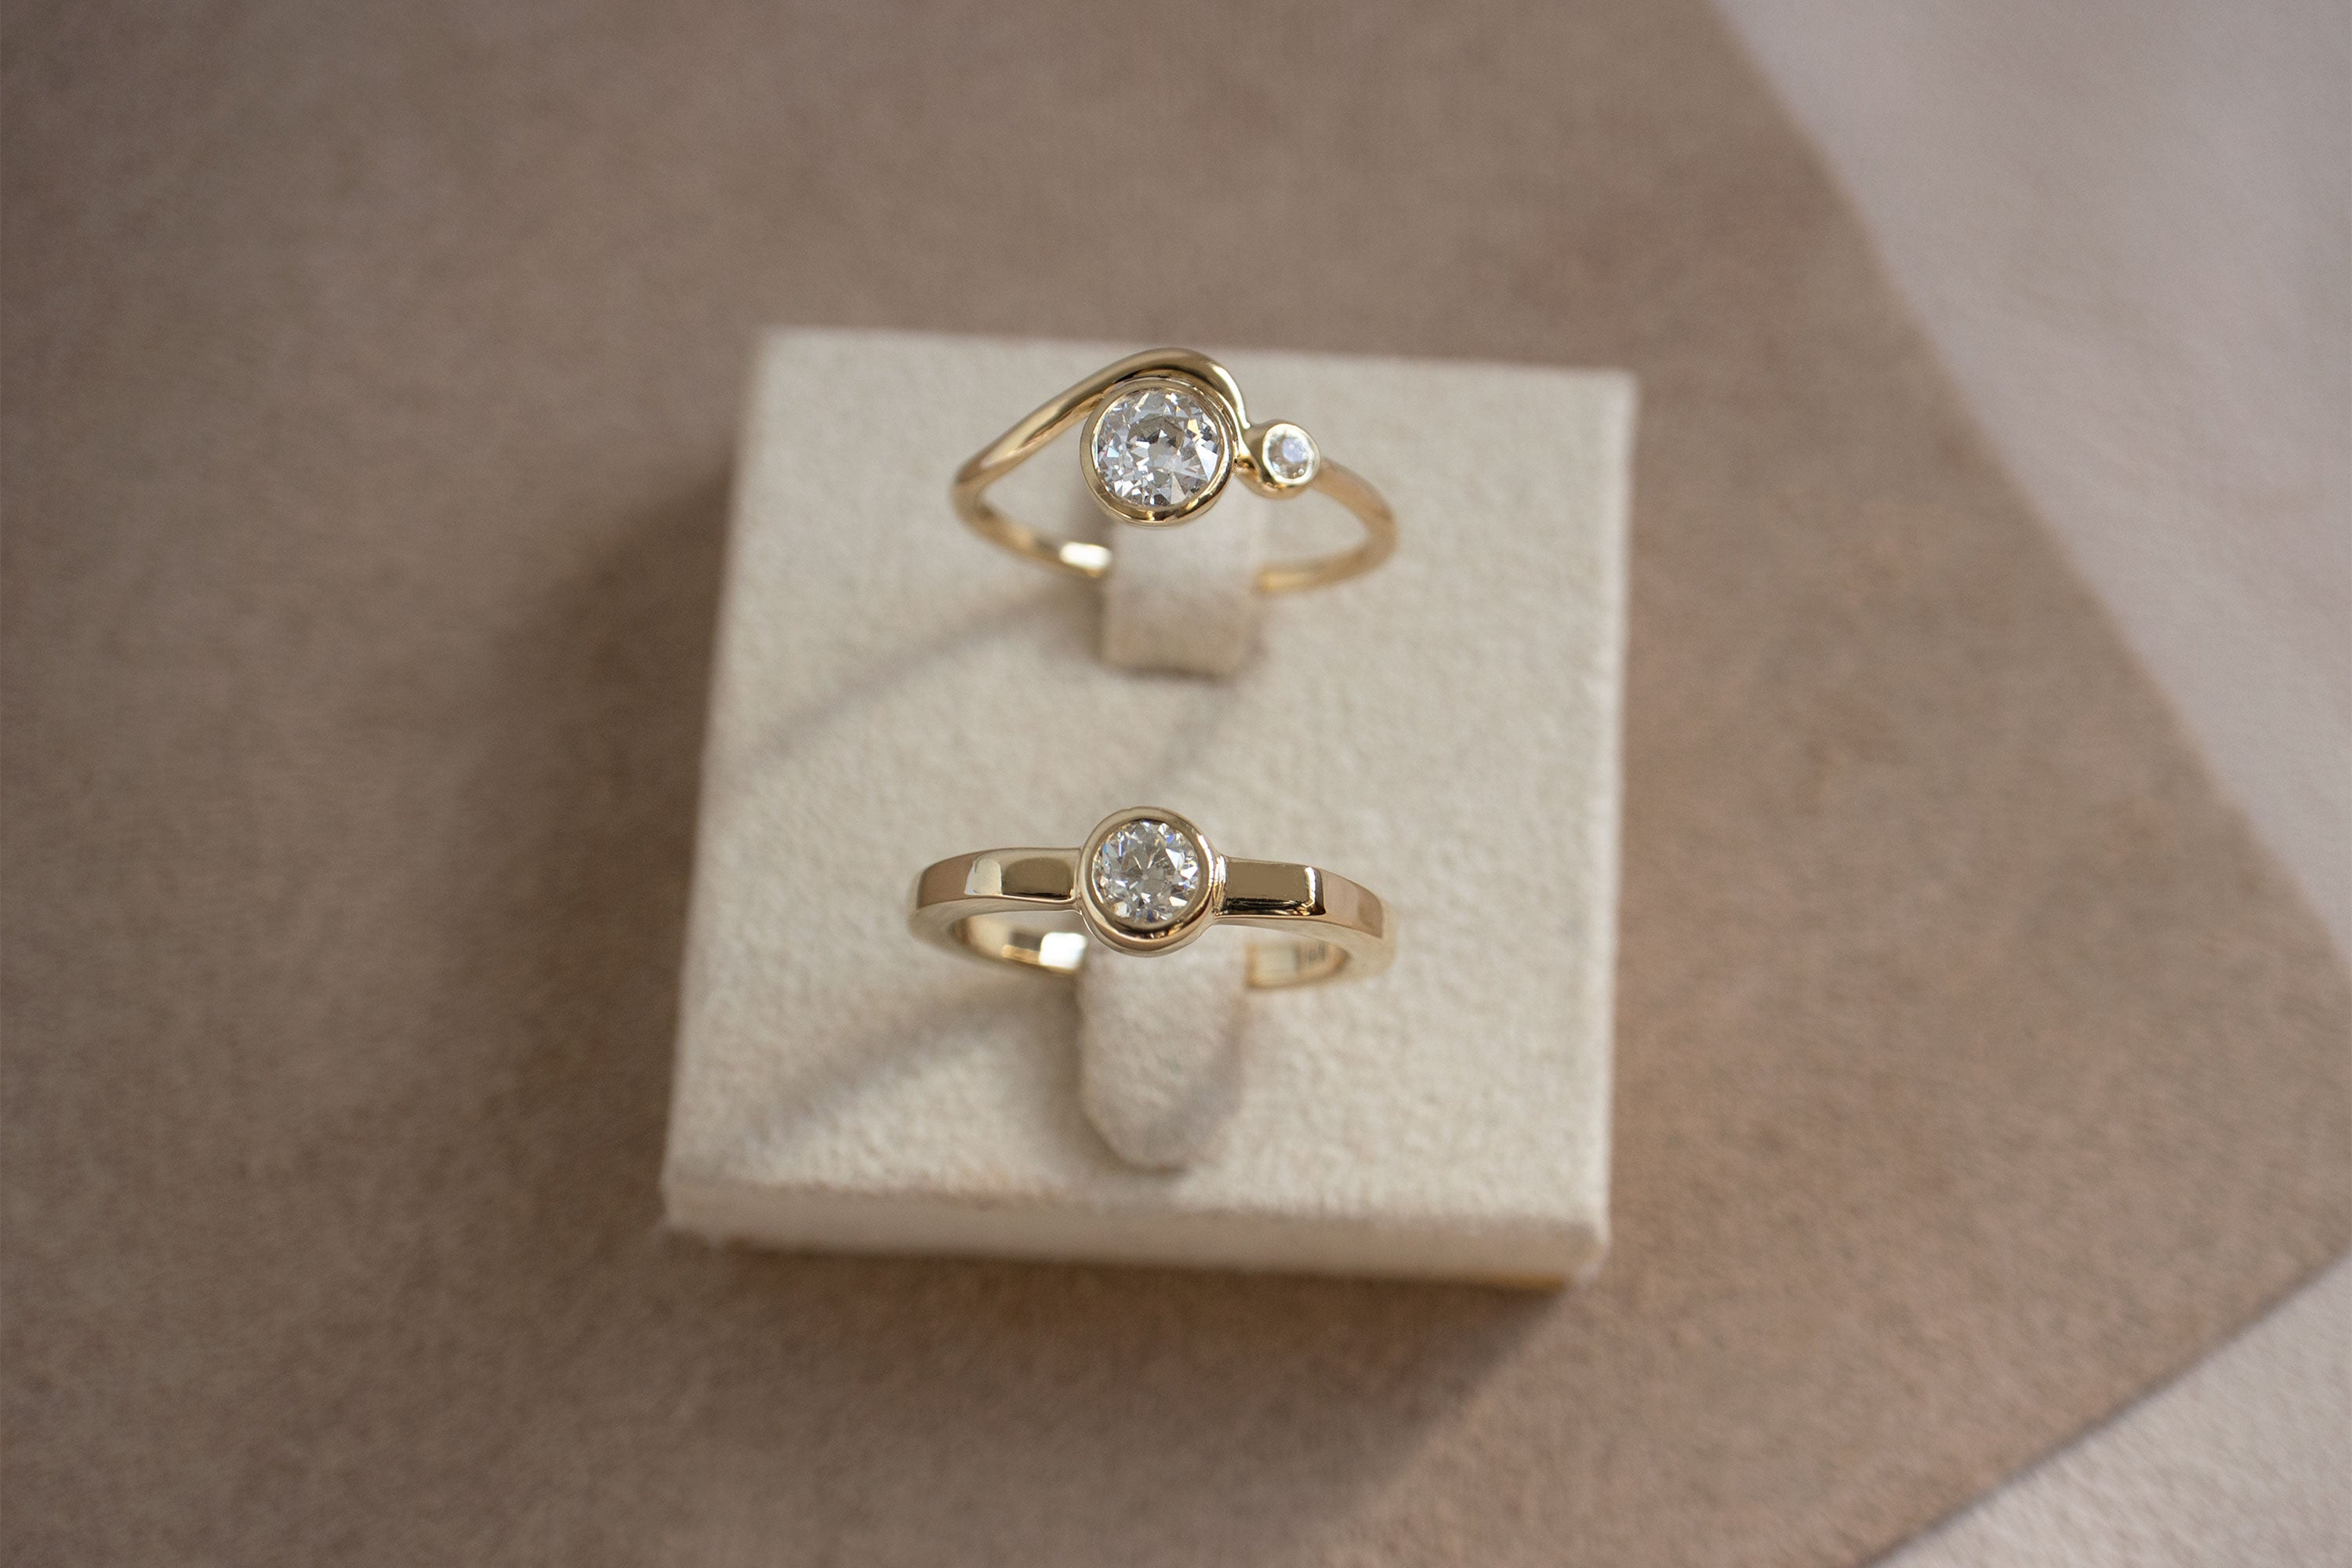 Old European Cut White Diamond Engagement Rings